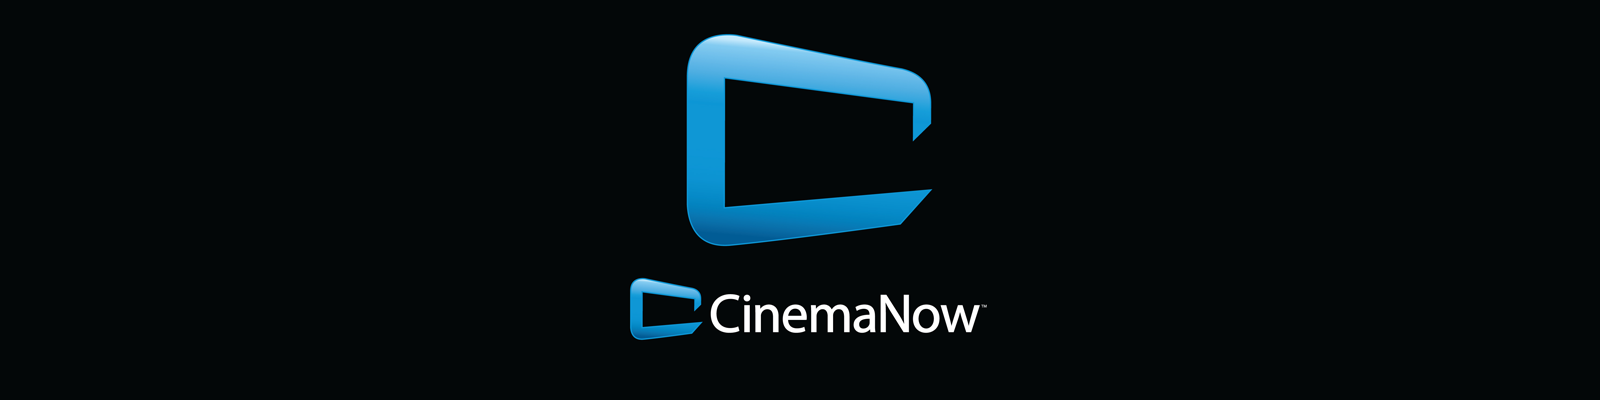 app and website like cinema now